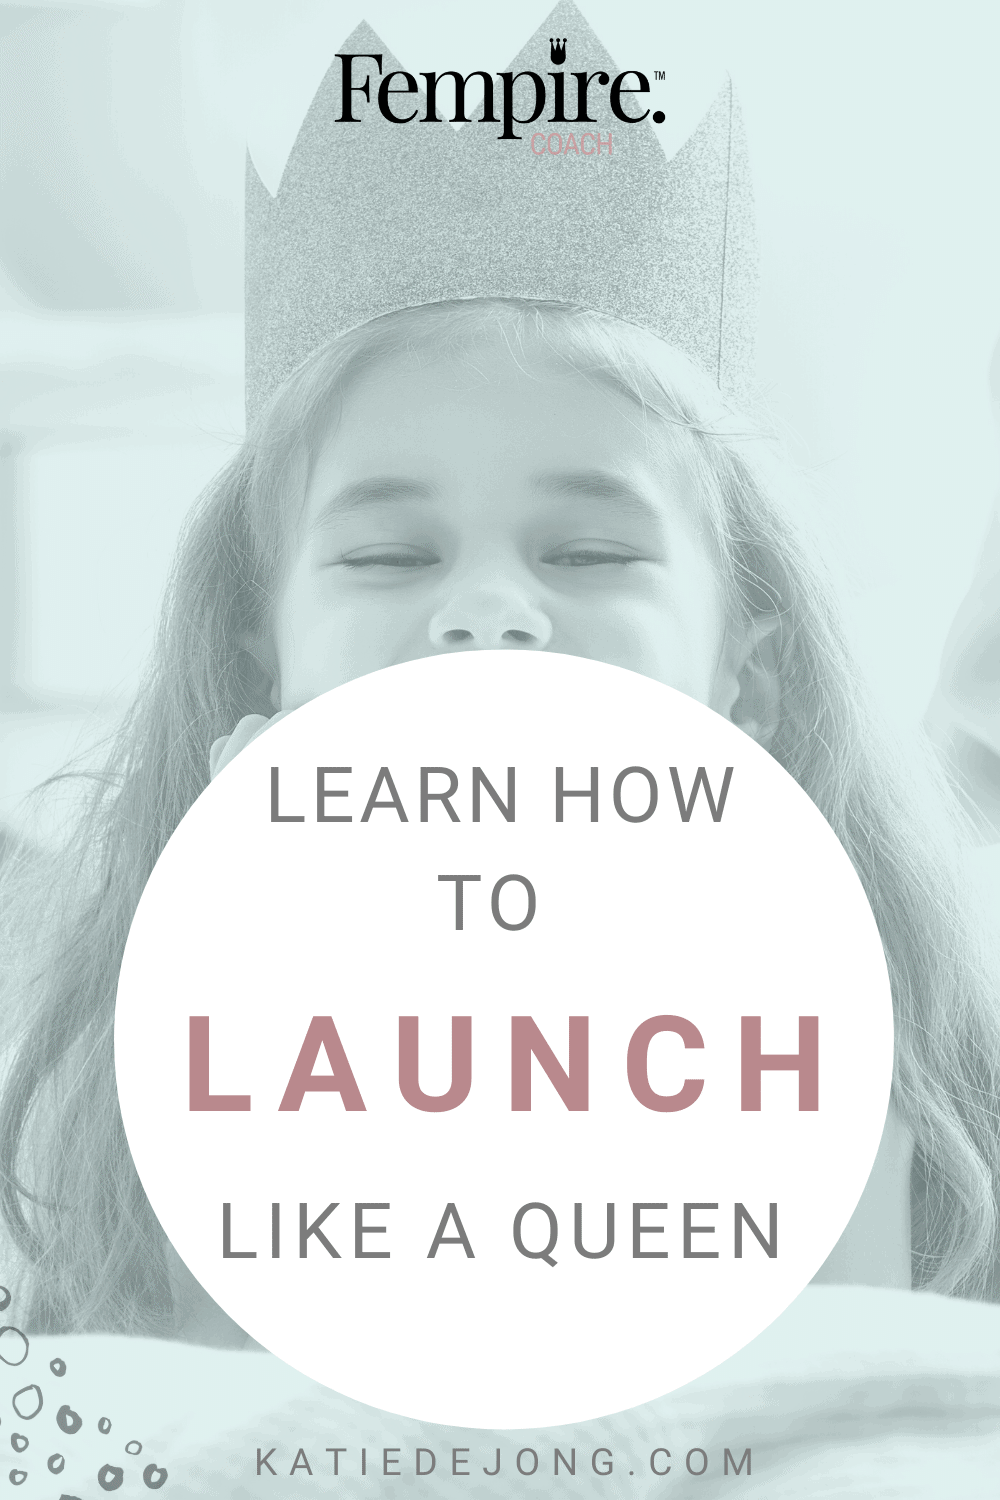 Learn how to launch like a Queen with our proven launch formula. If you do the work, it works! Discover how to more sales and make the impact you deserve. #fempire #entrepreneur #launch #productlaunch #businesscoach #womeninbusiness #fempirecoach #launchformula #ladyboss